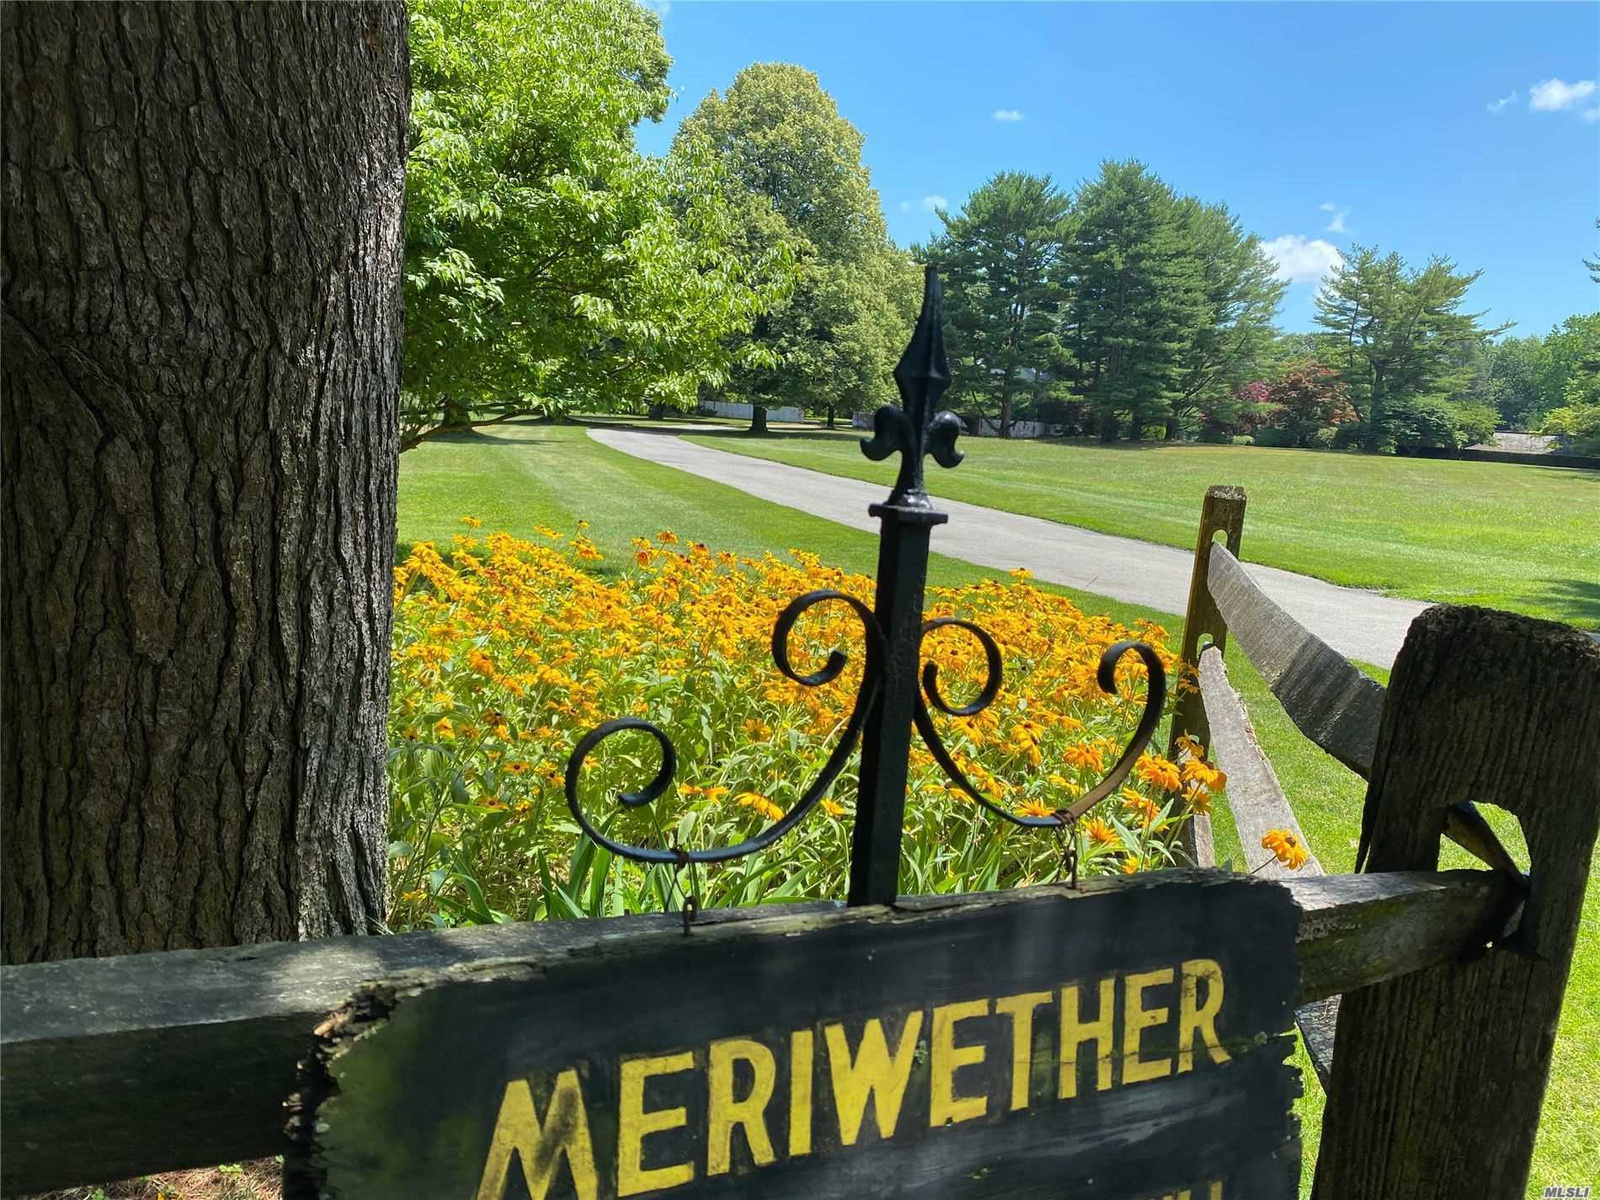 Meriwhether - Your Personal Paradise